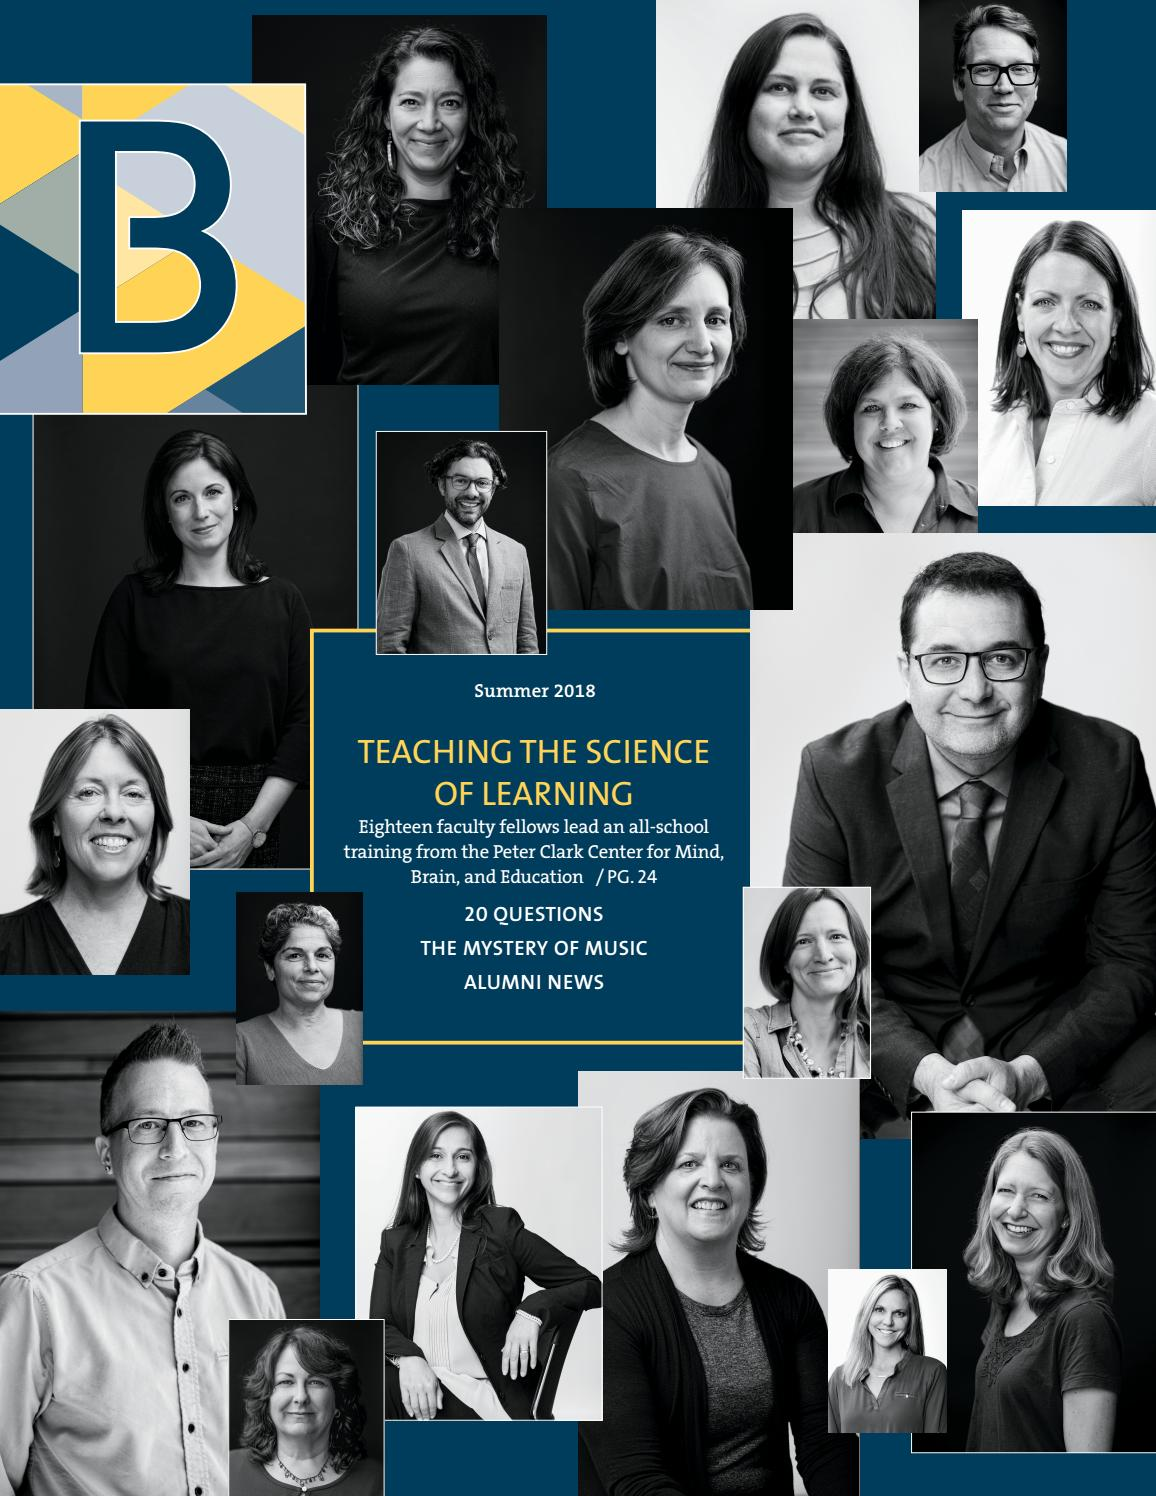 Today At Breck Summer 2018 By Breck School Issuu